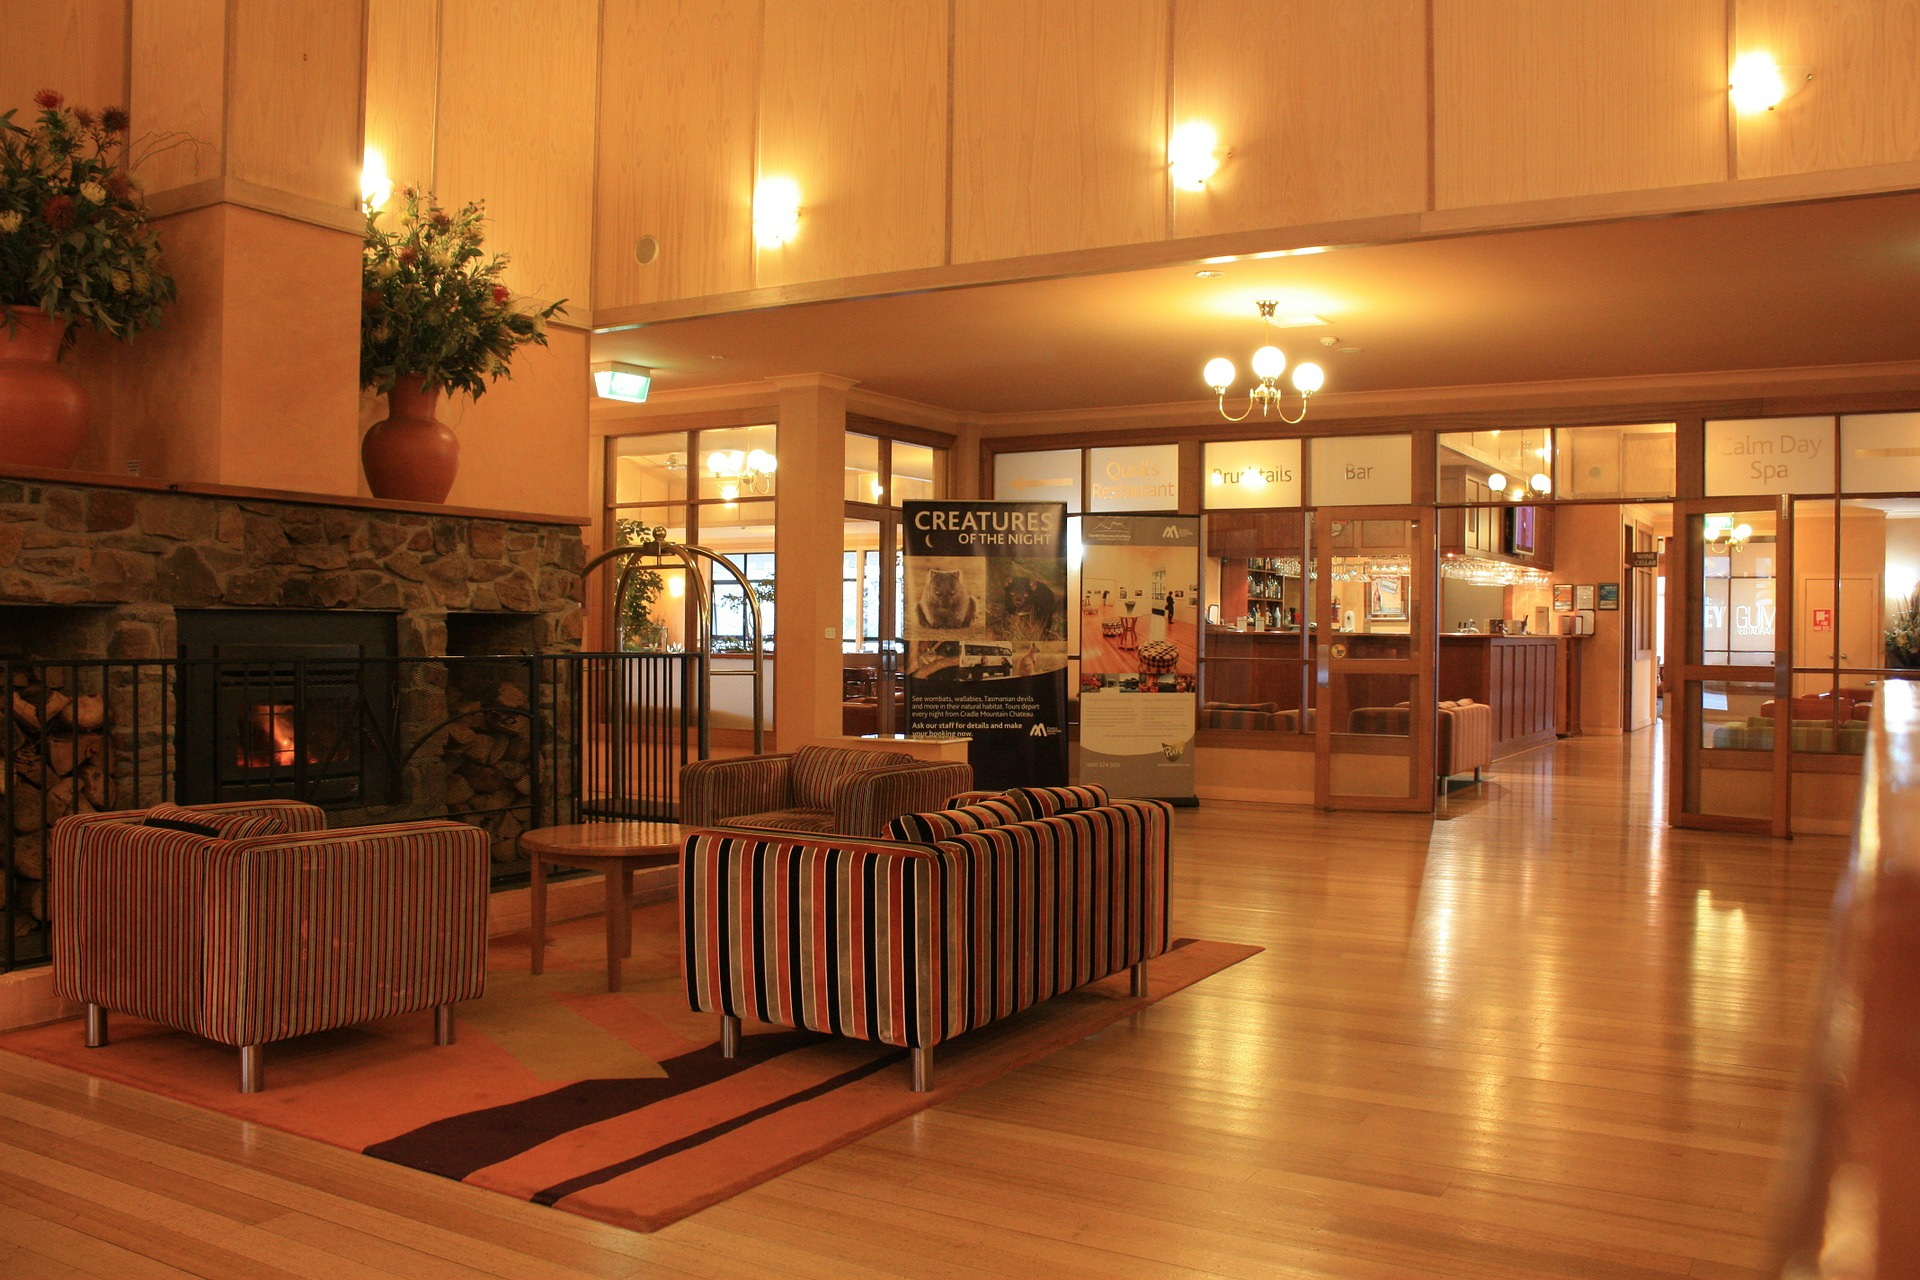 Renovating Guest Rooms? Don't Forget to Modernize Your Hotel Lobby